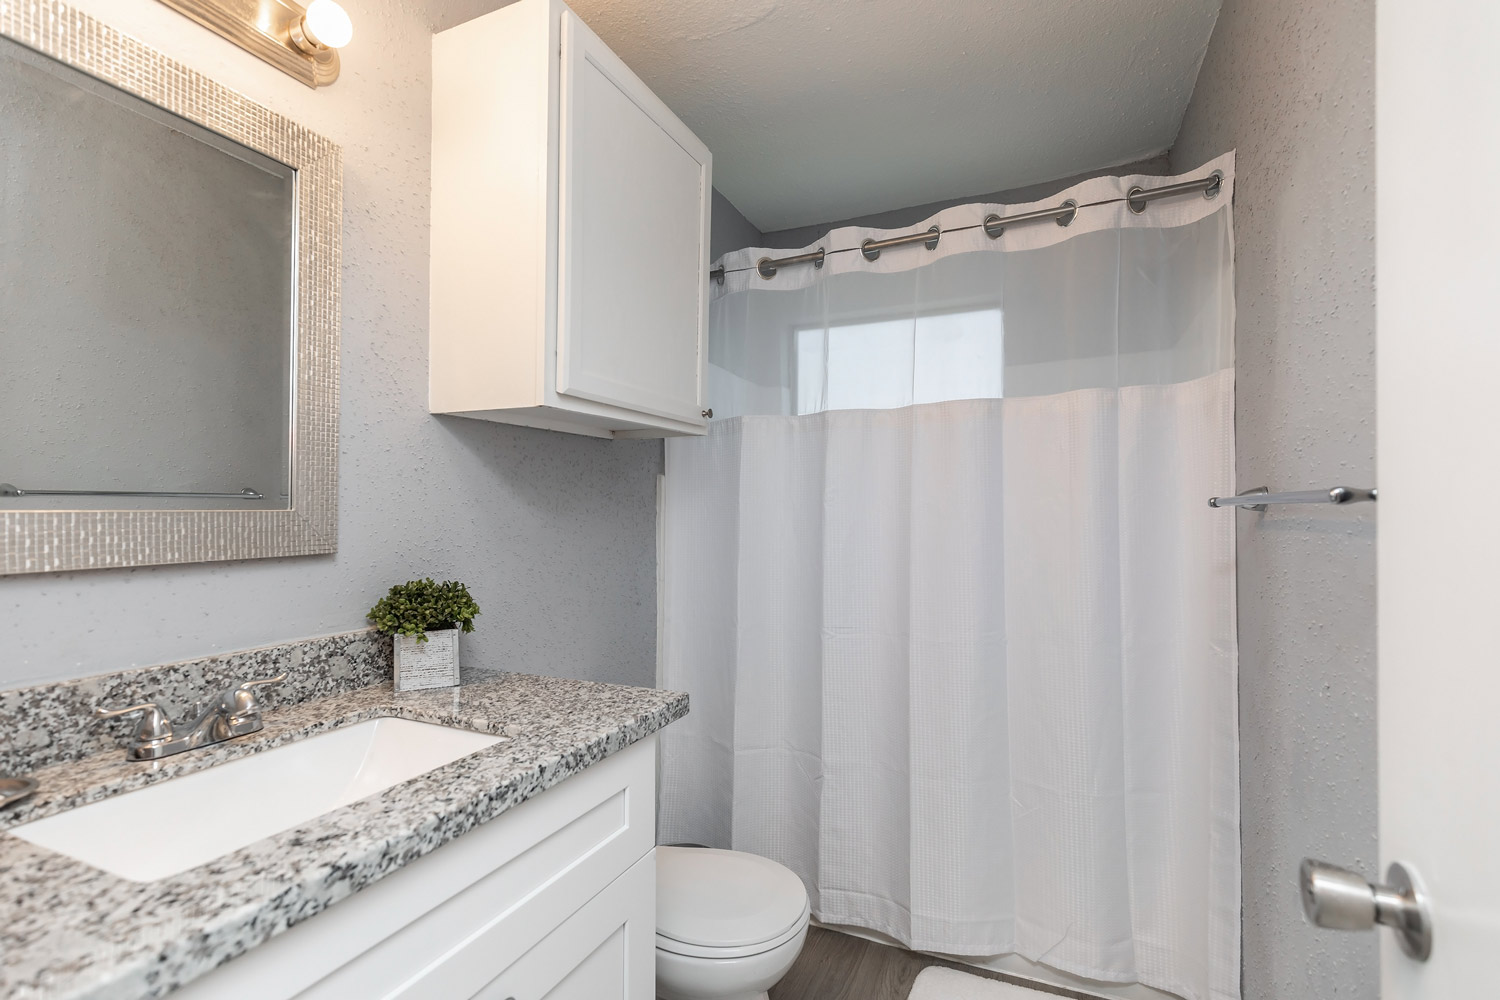 Interior Bathroom at The Five Points at Texas Apartments in Texas City, Texas